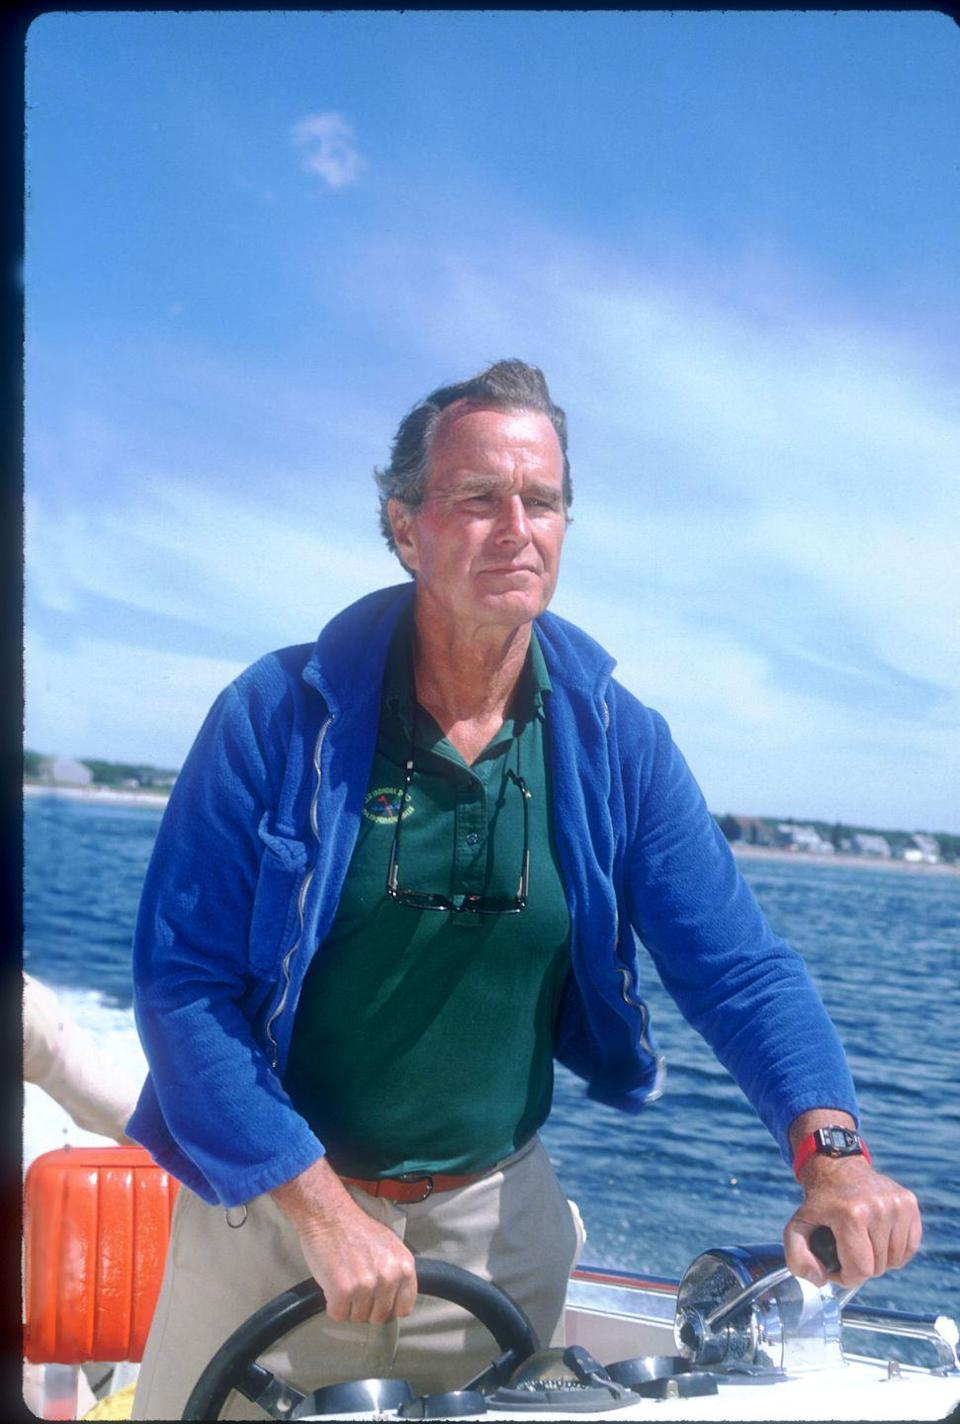 <p>While serving as Vice President under Ronald Reagan, future President George H. W. Bush vacations with his family in Kennebunkport, Maine.</p>